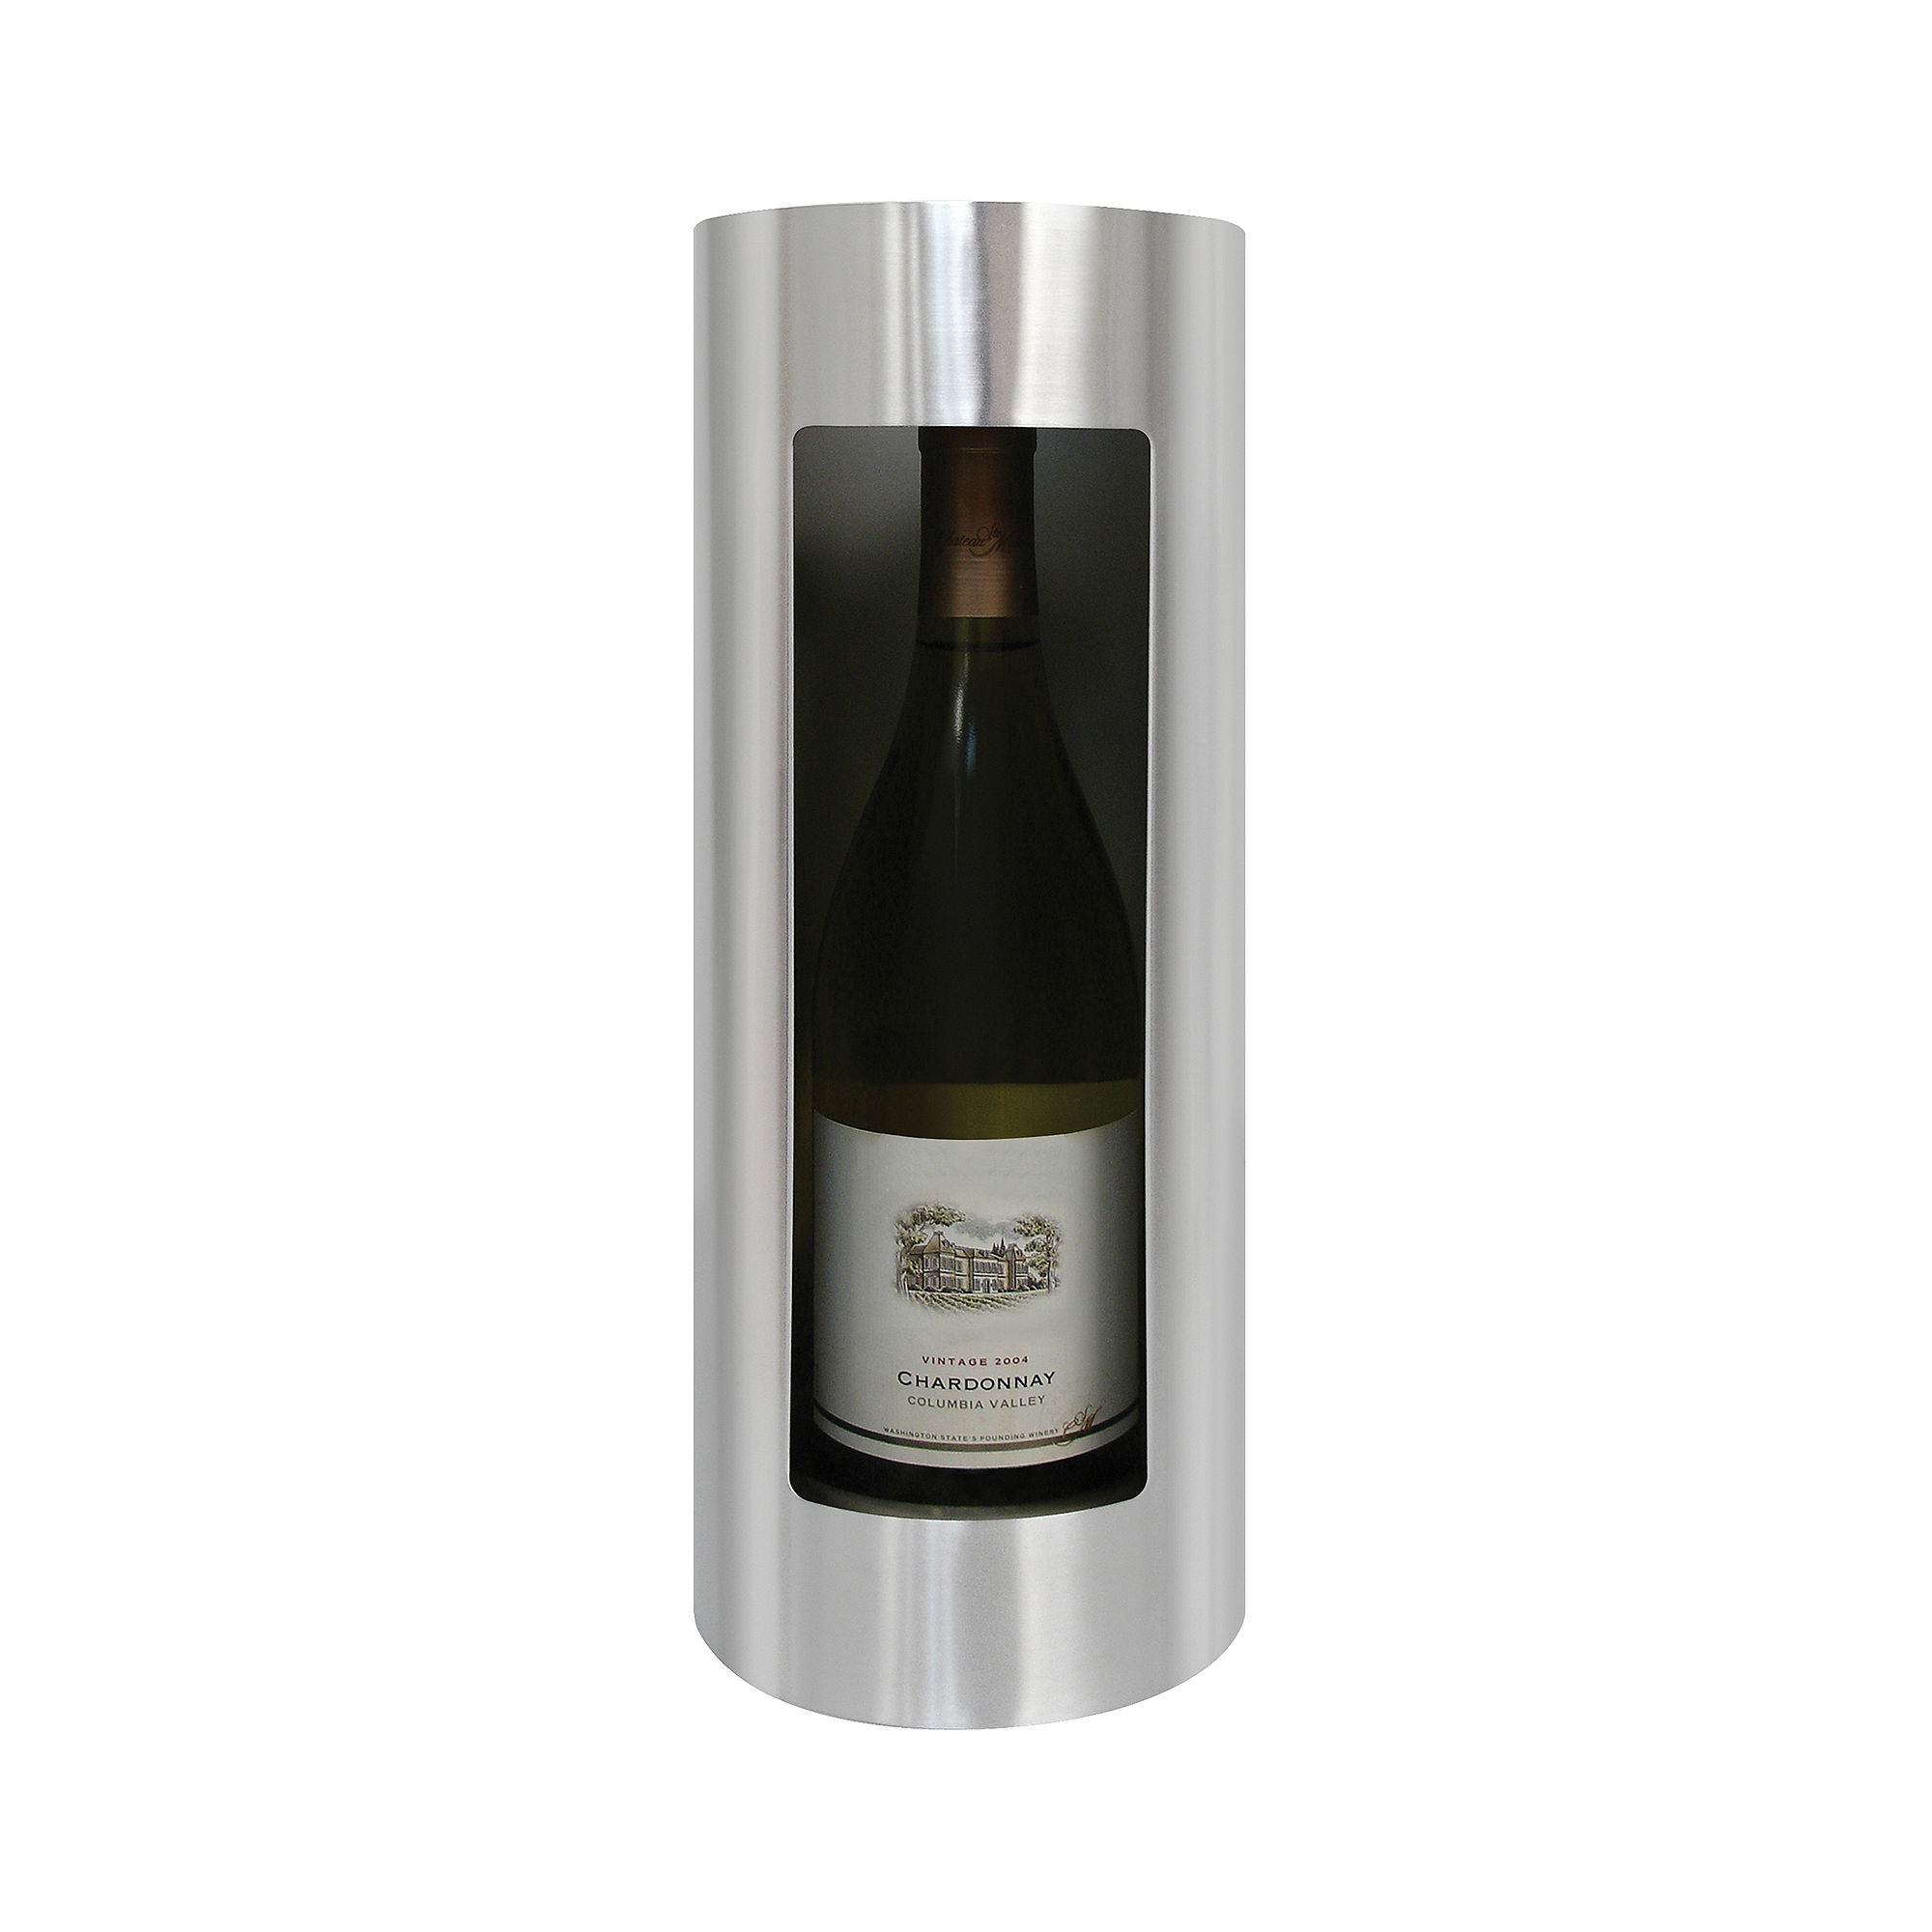 Epicureanist™ Iceless Wine Display Chiller